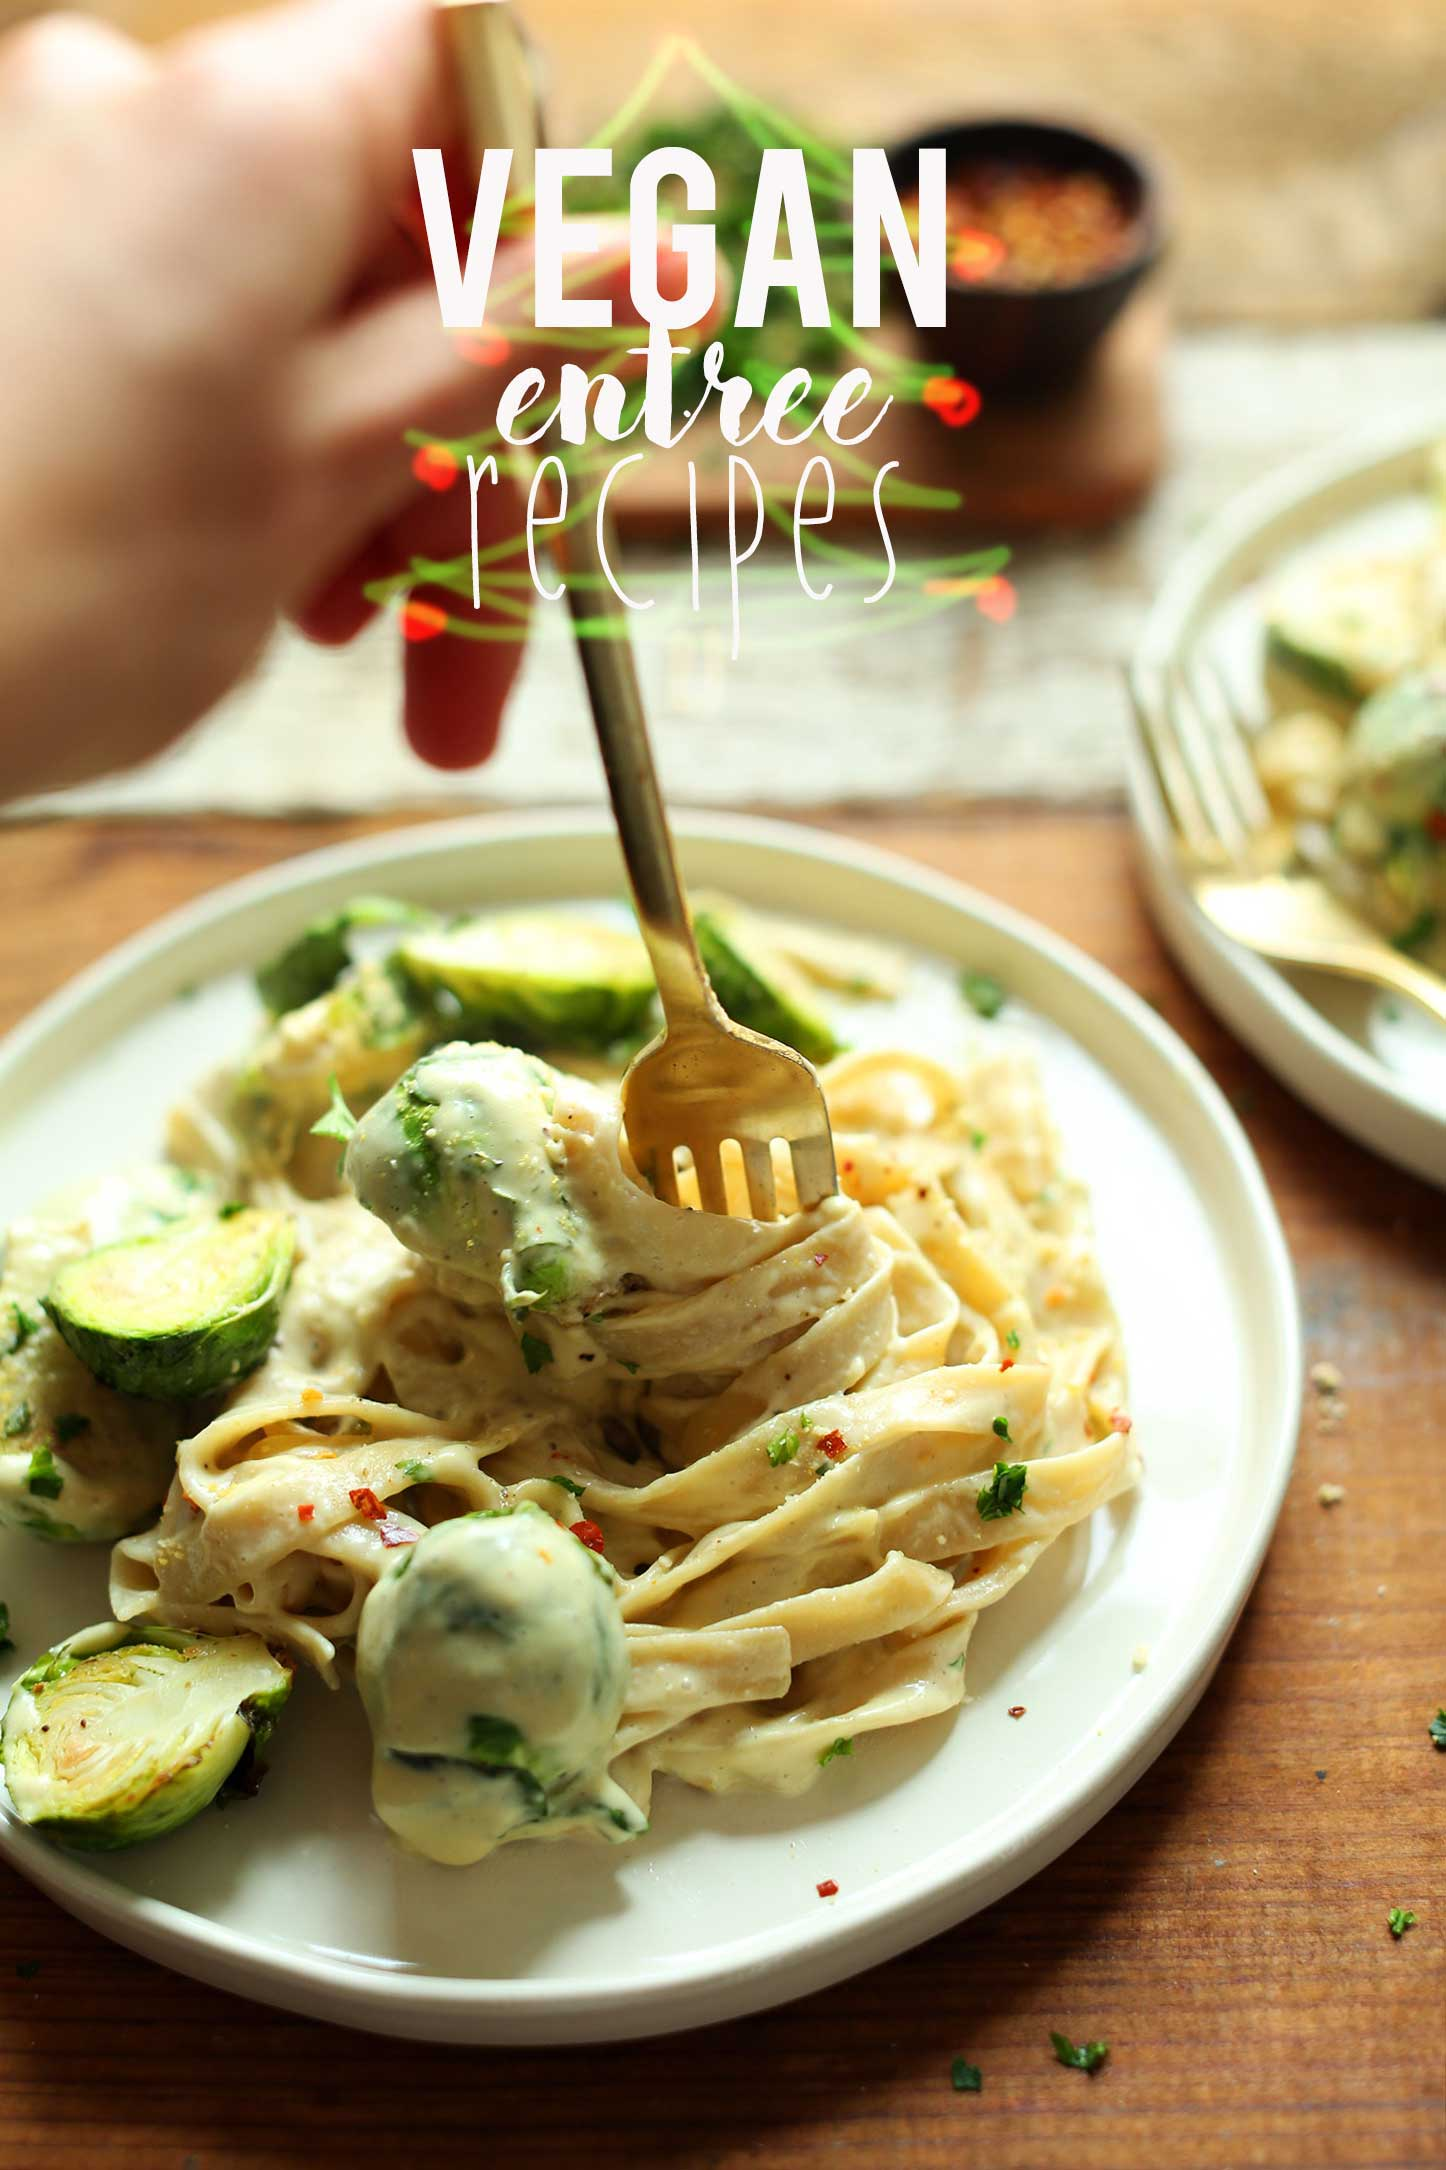 Swirling a fork in gluten-free vegan pasta which is one of our vegan holiday entree recipes